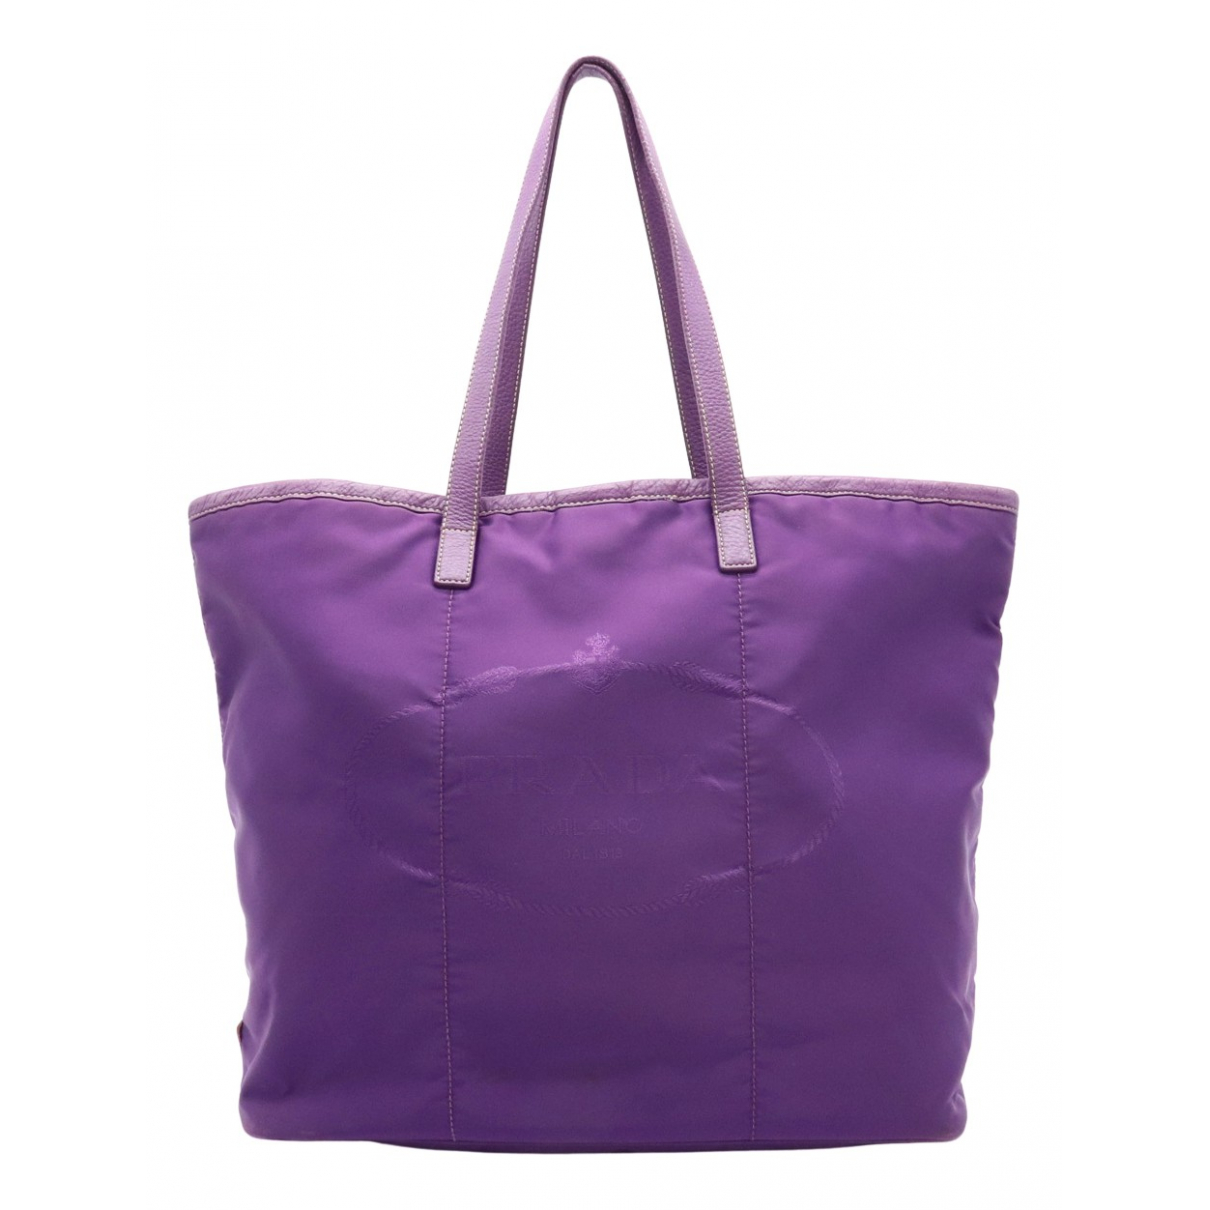 Prada N Purple Cloth handbag for Women N